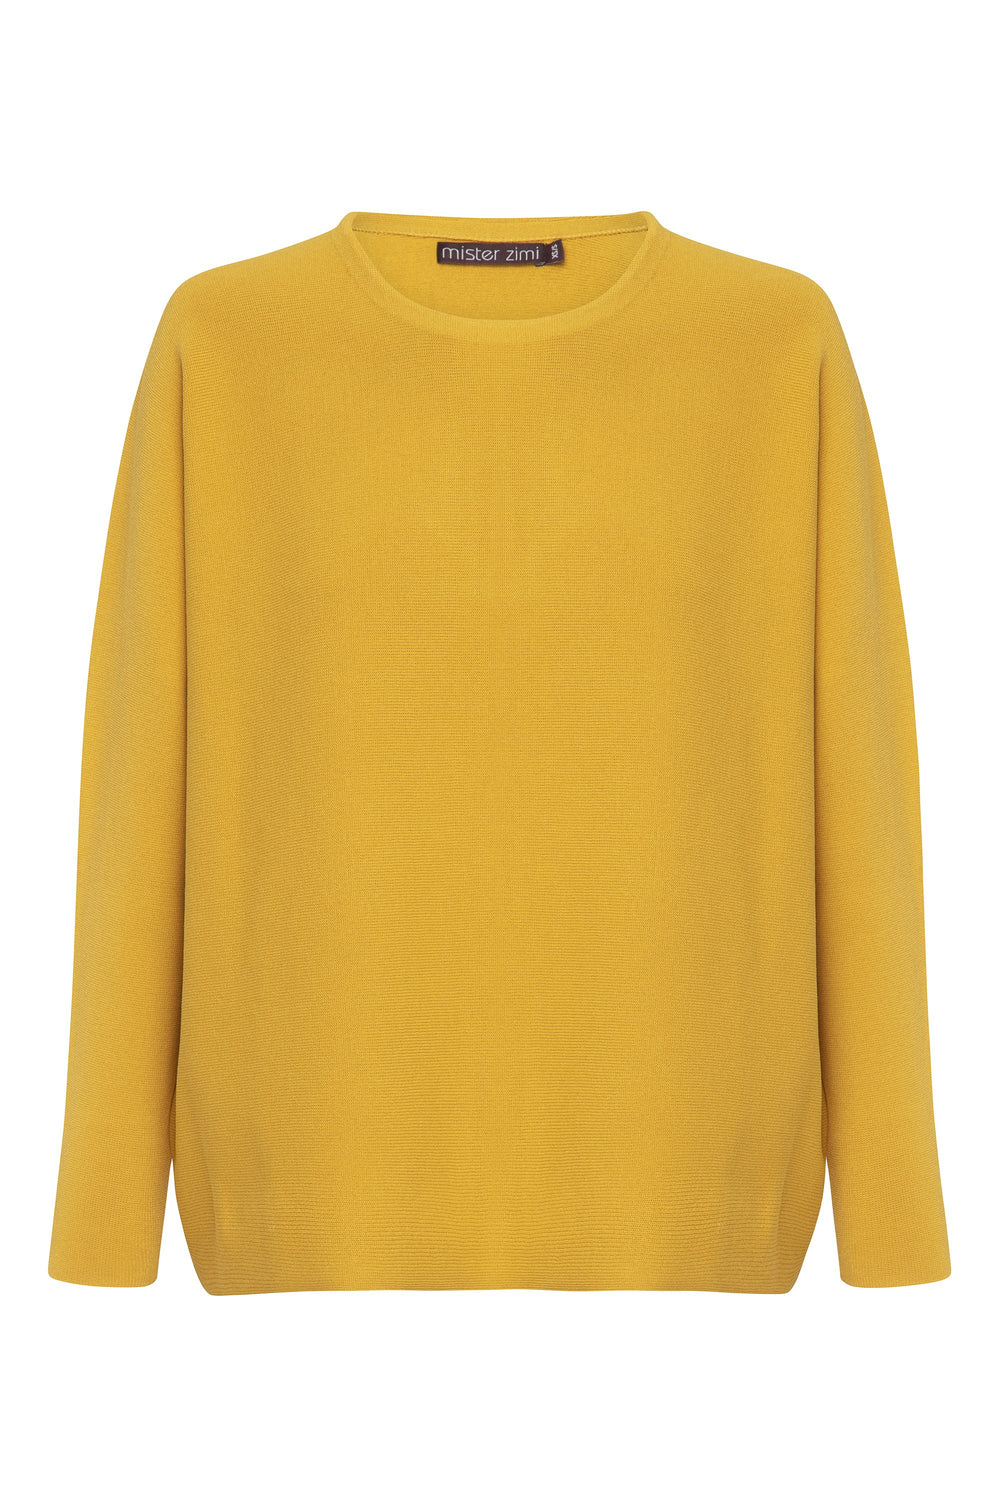 Milla Jumper In Mustard